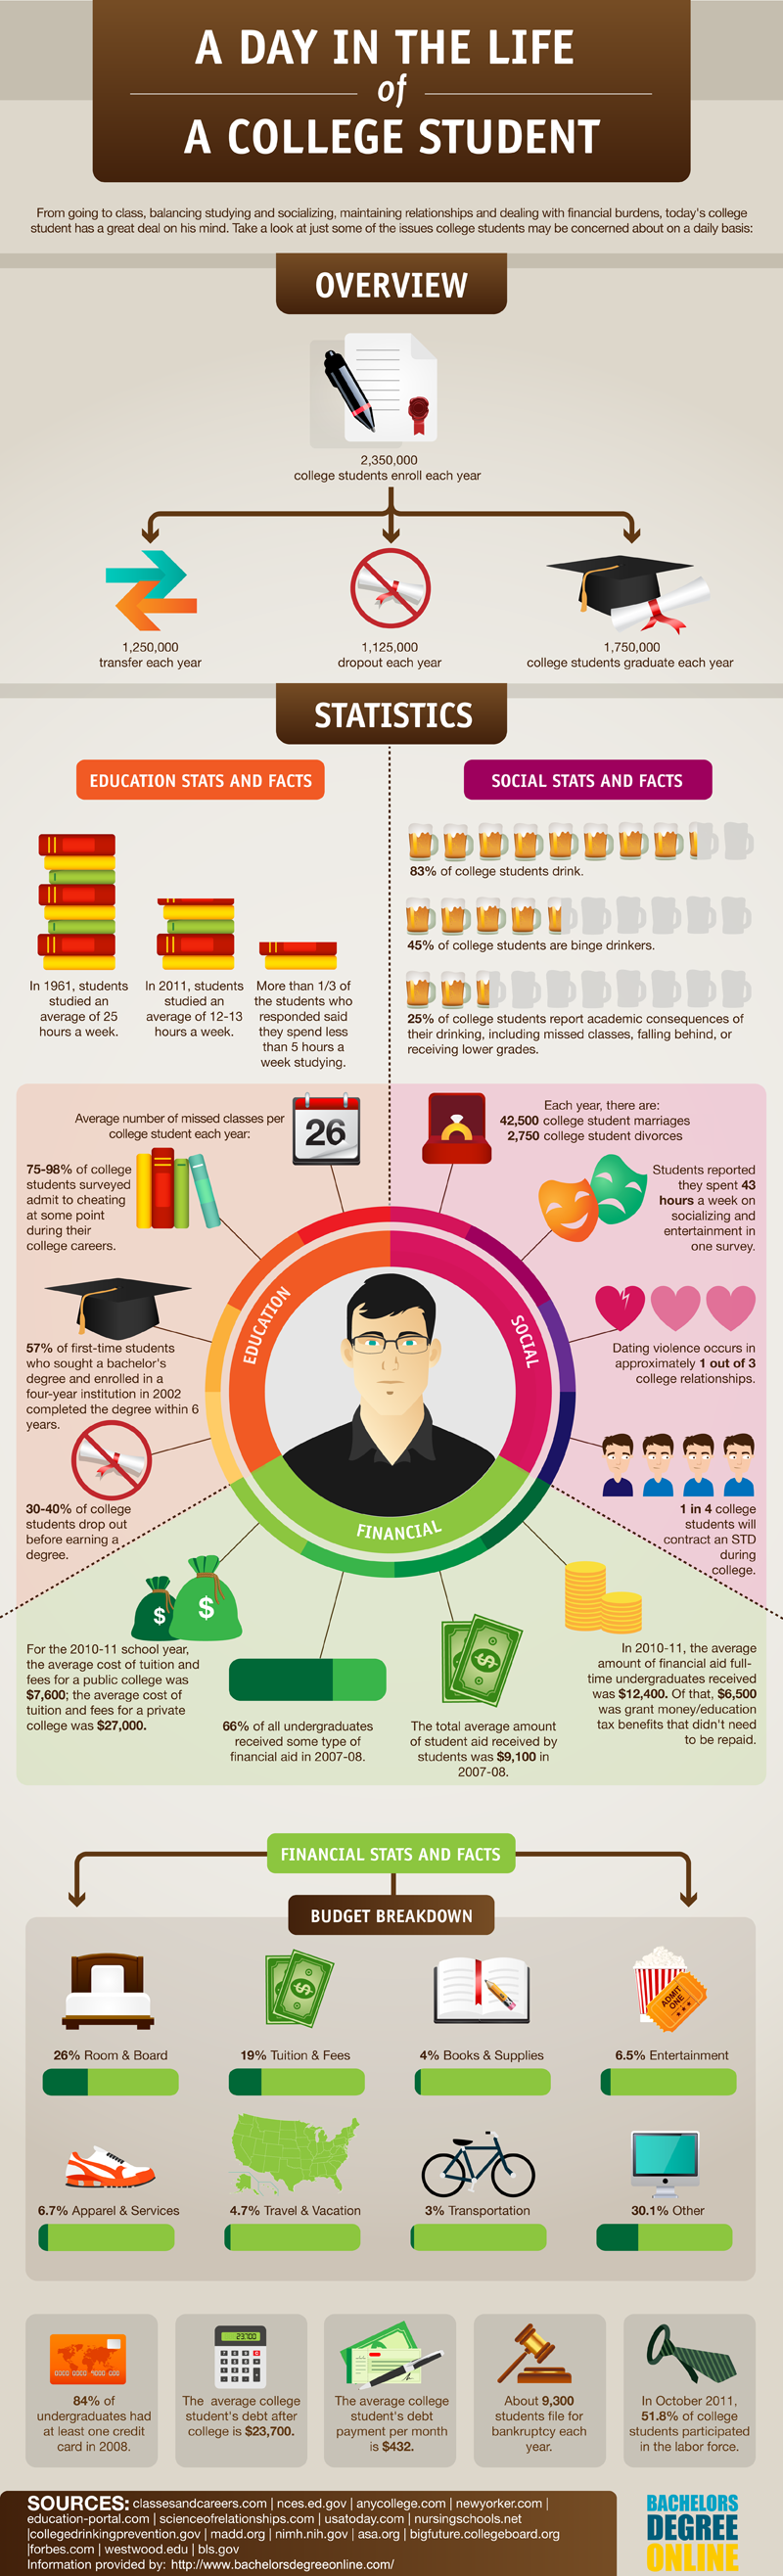 A day in the life of a college student [infographic] - Holy Kaw!